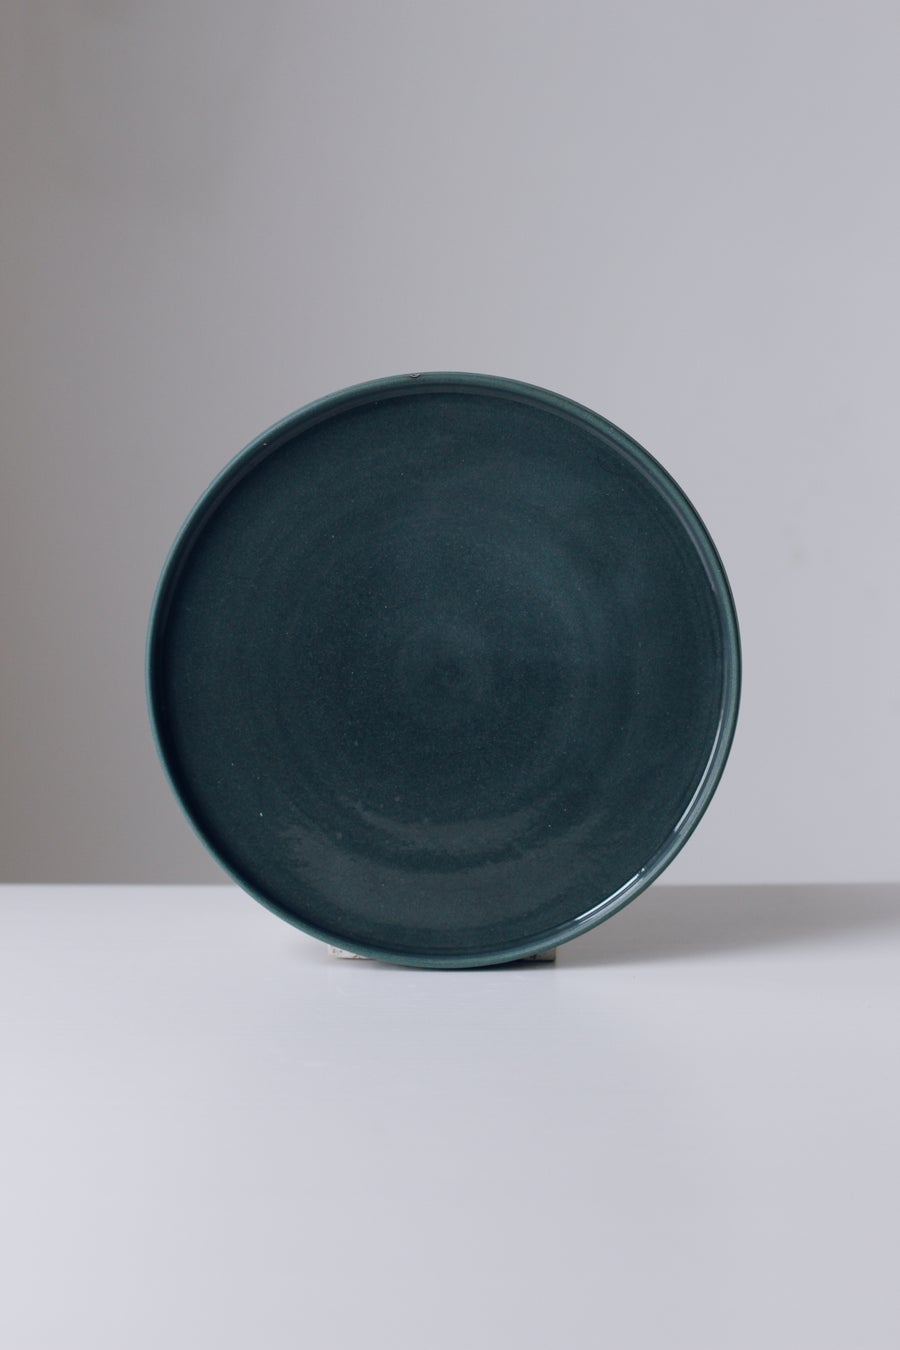 Image of Teal Serving Tray